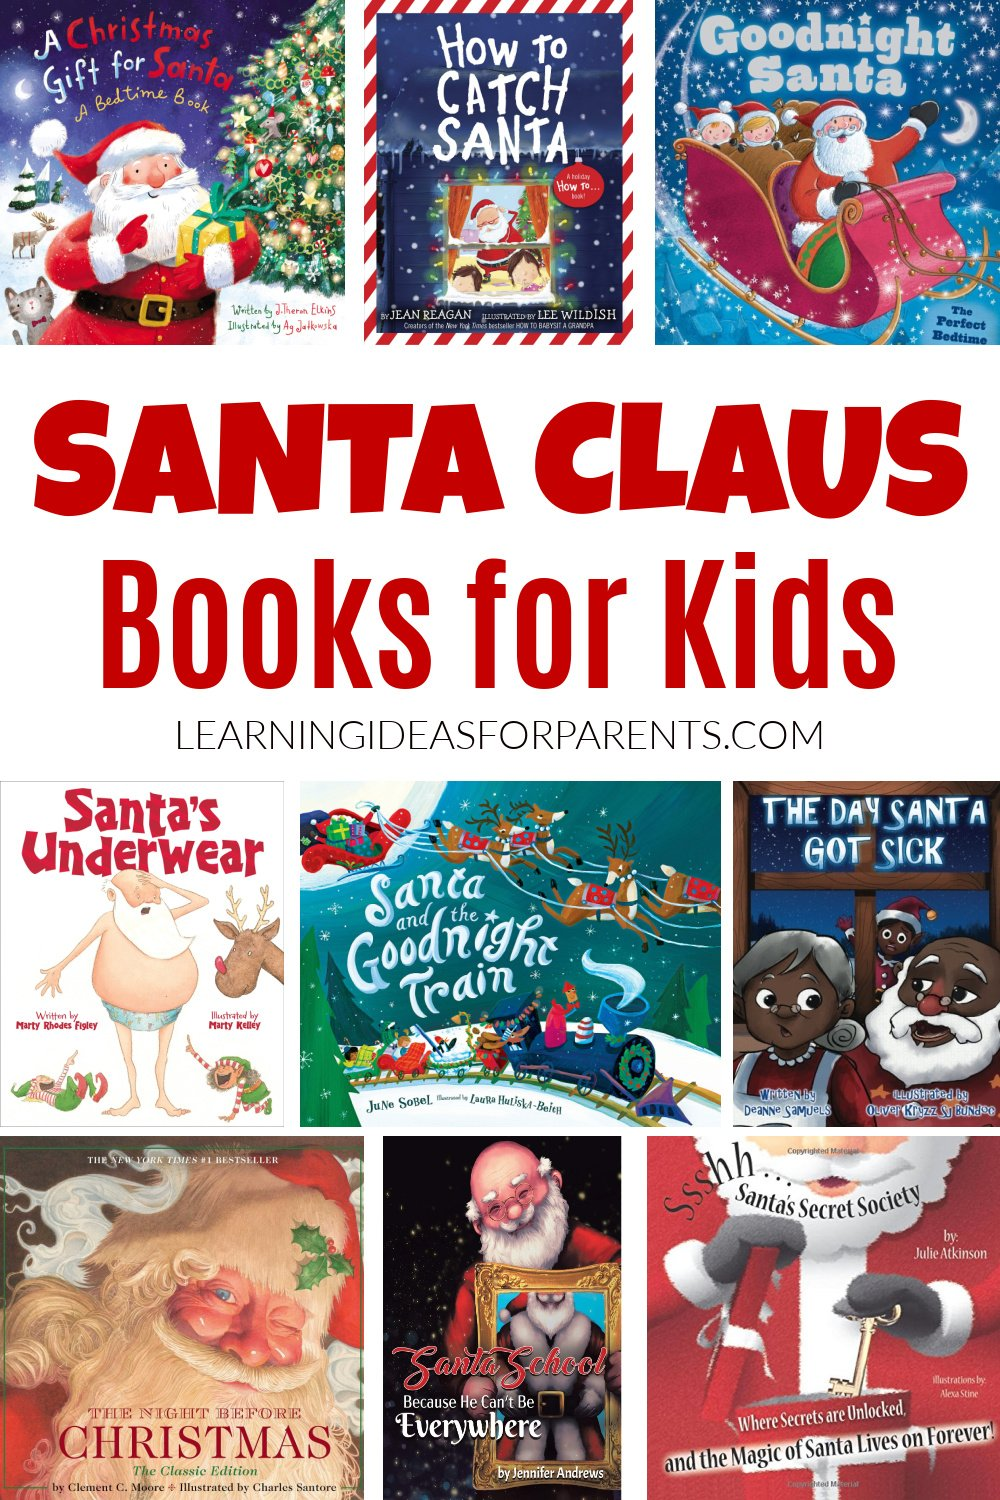 Santa Clause books for kids